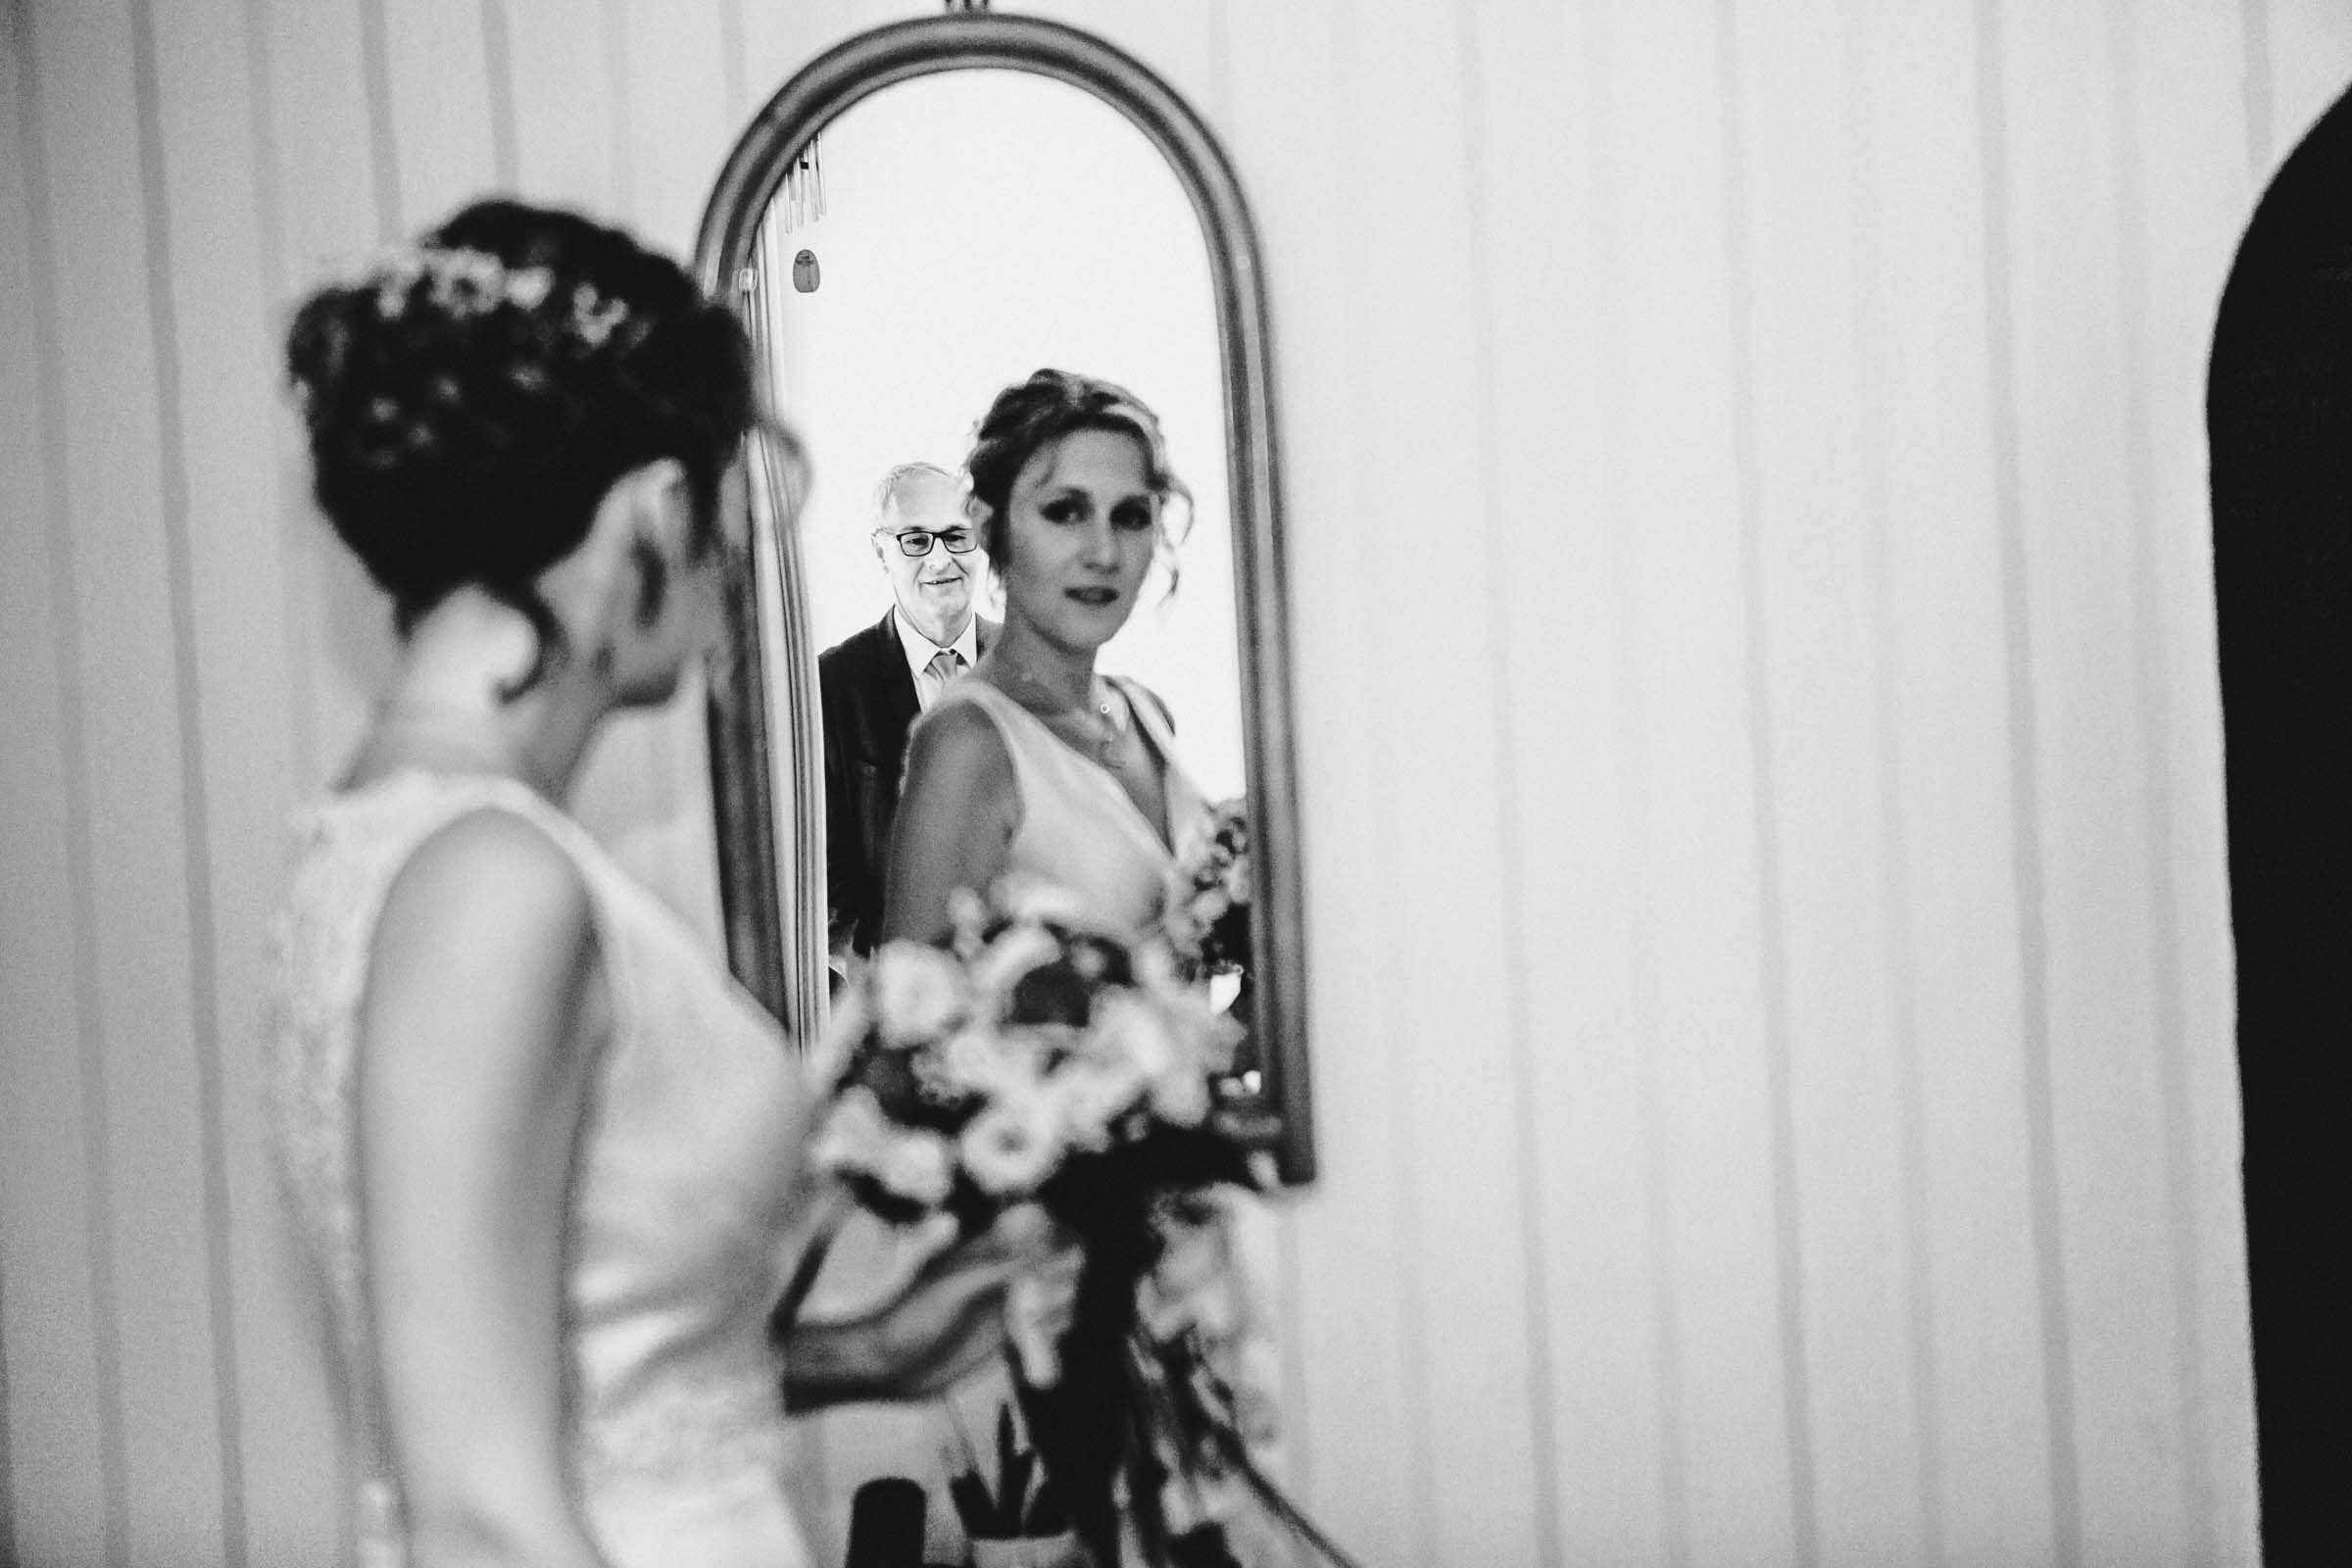 Céline and Julien wedding at Chanos-Curson, France